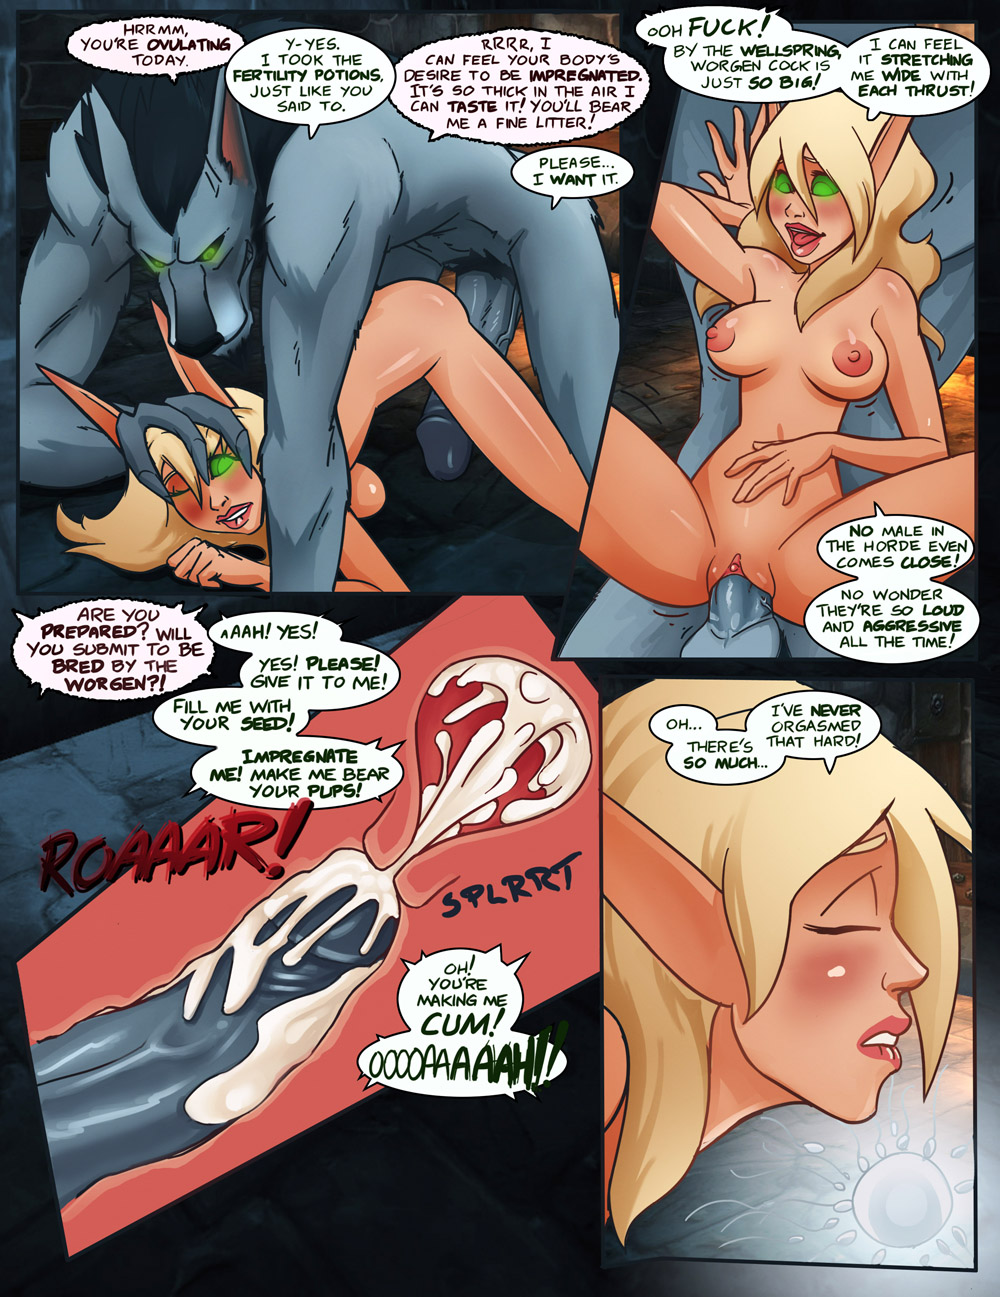 Blood elf impregnation hentai hentai gallery